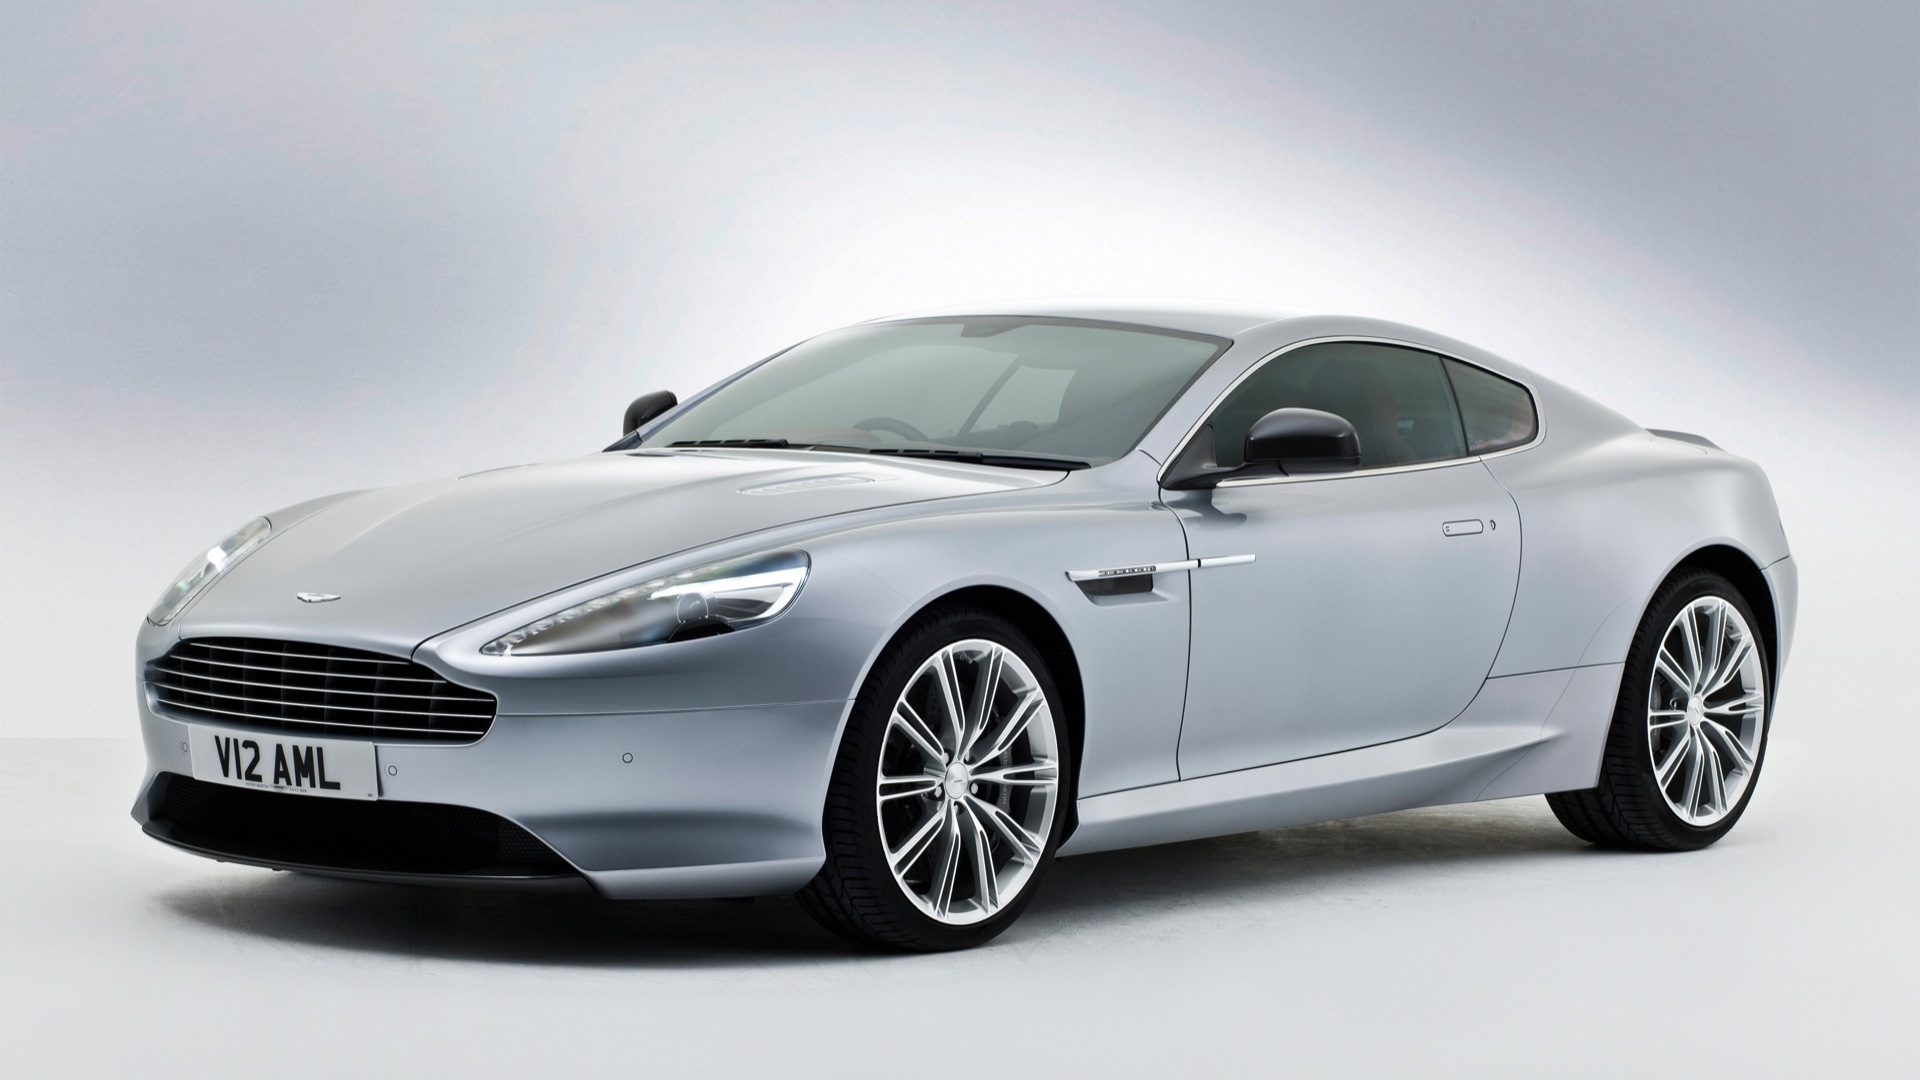 Aston Martin DB9 2013 STD